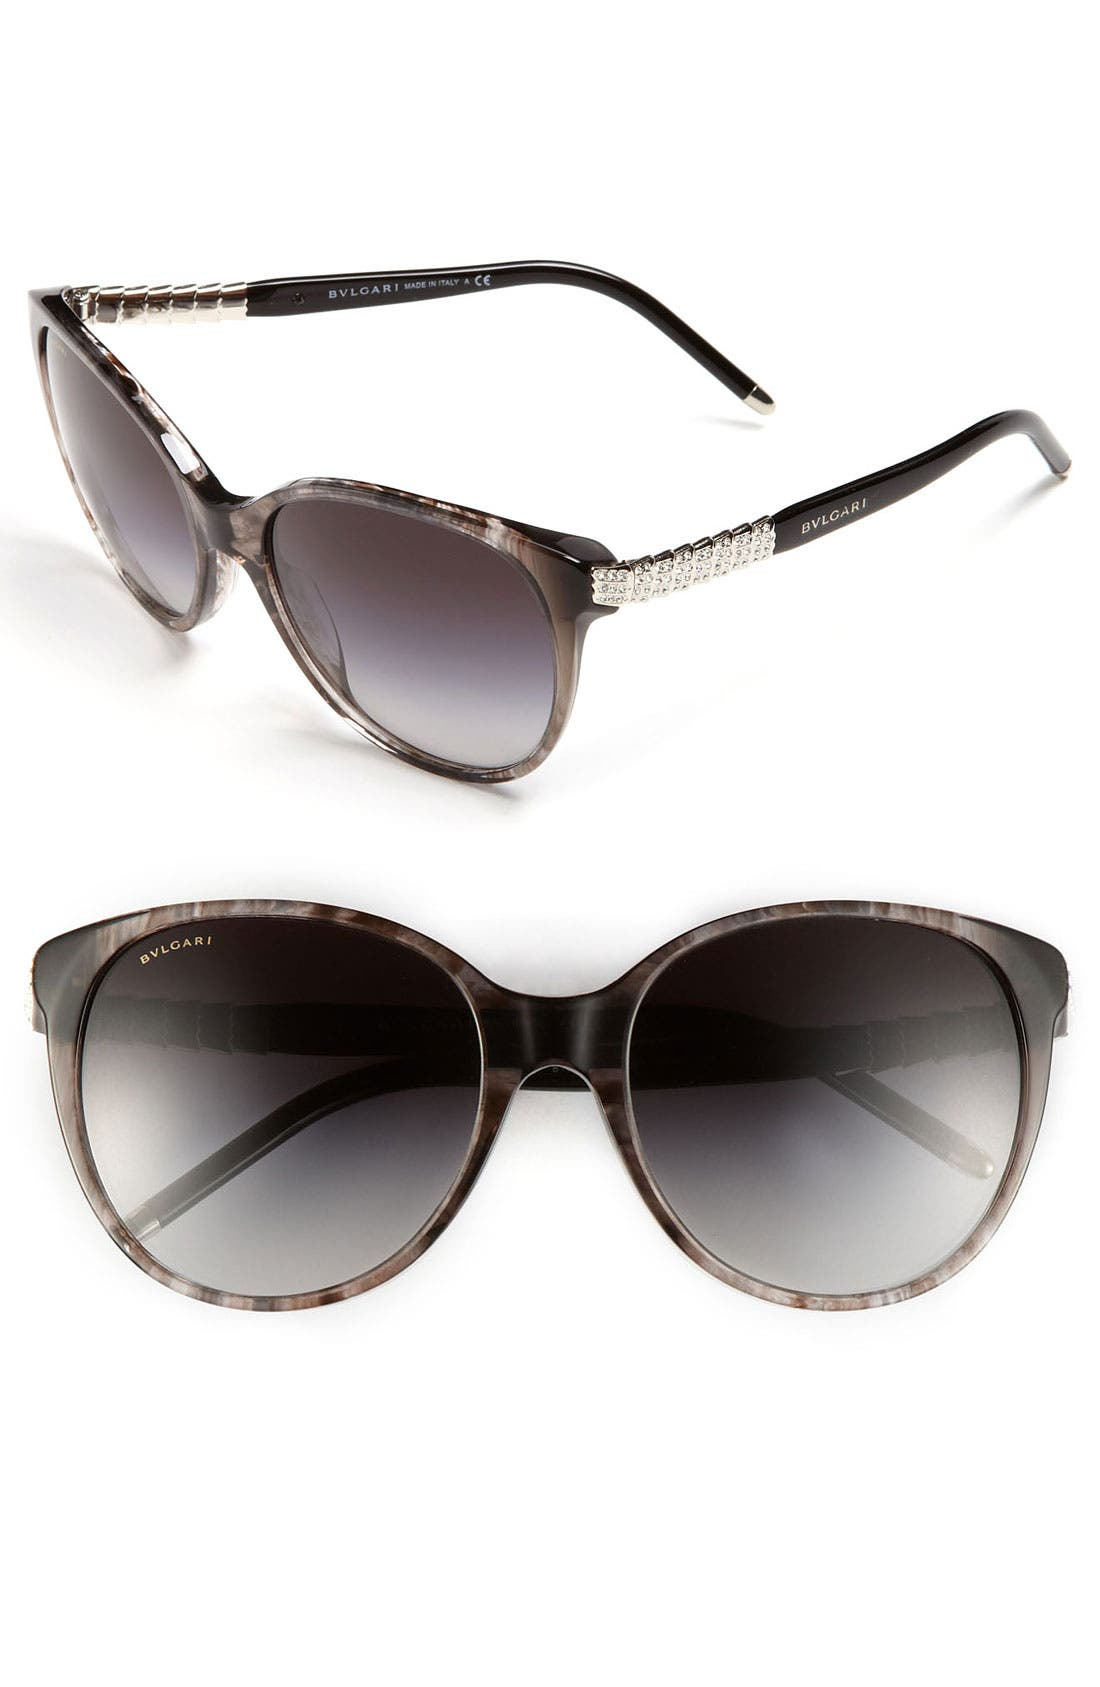 Main Image - BVLGARI 56mm Cat's Eye Sunglasses